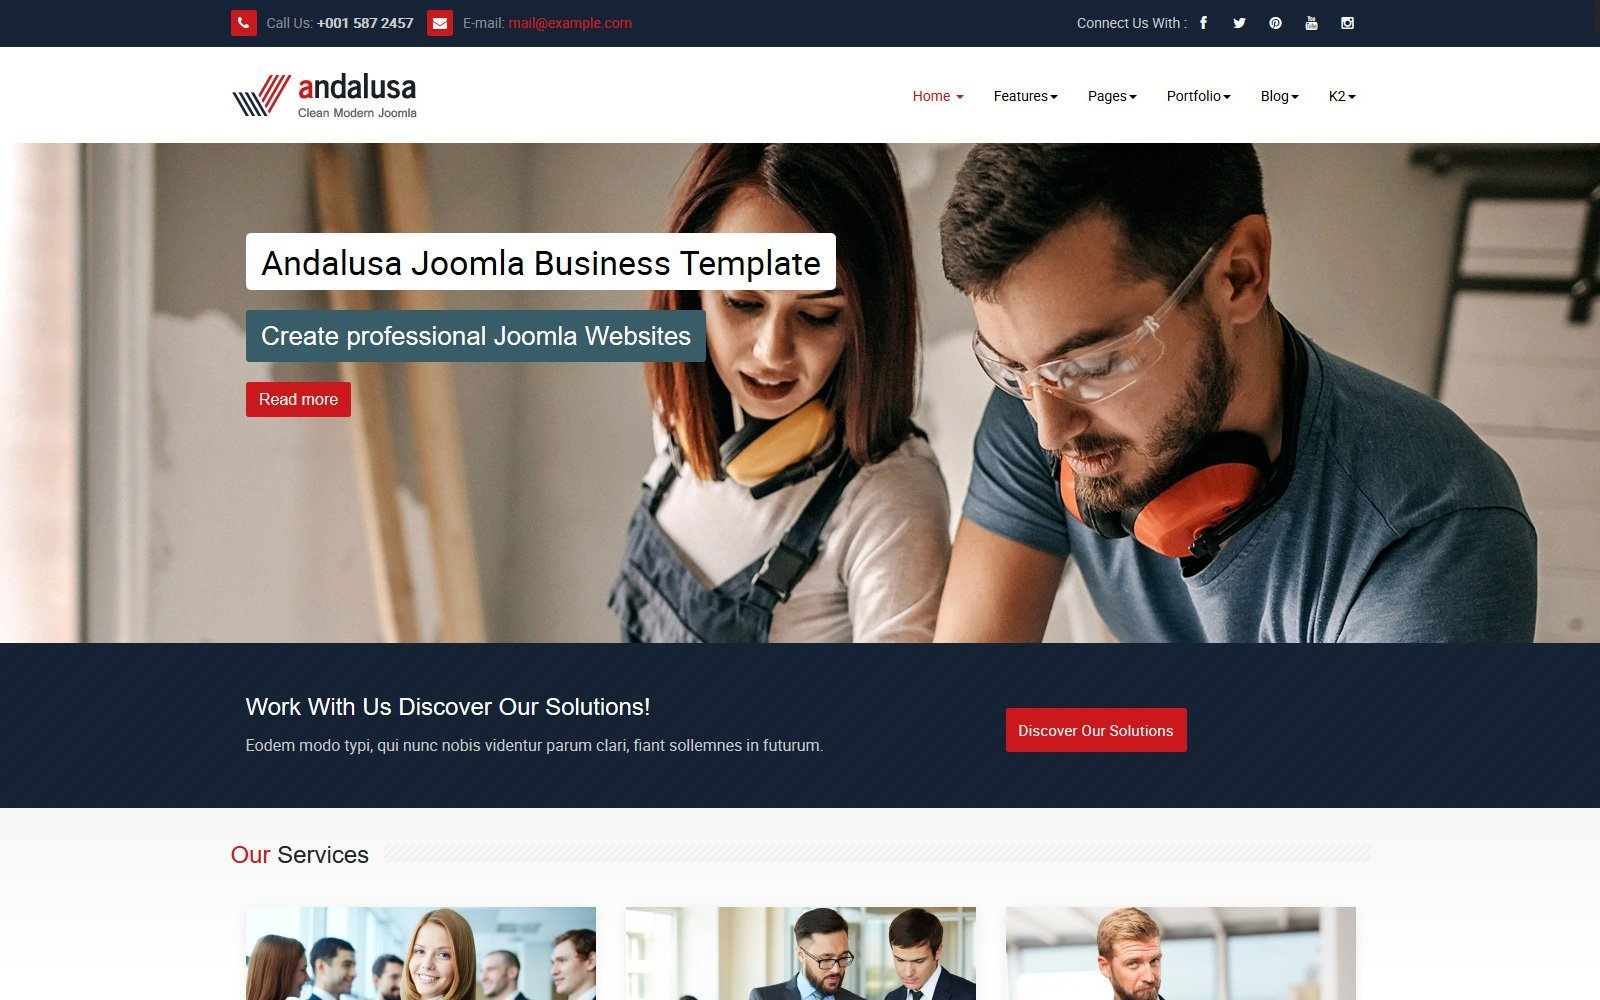 Reszponzív Andalusa Business-Corporation Joomla sablon 118368